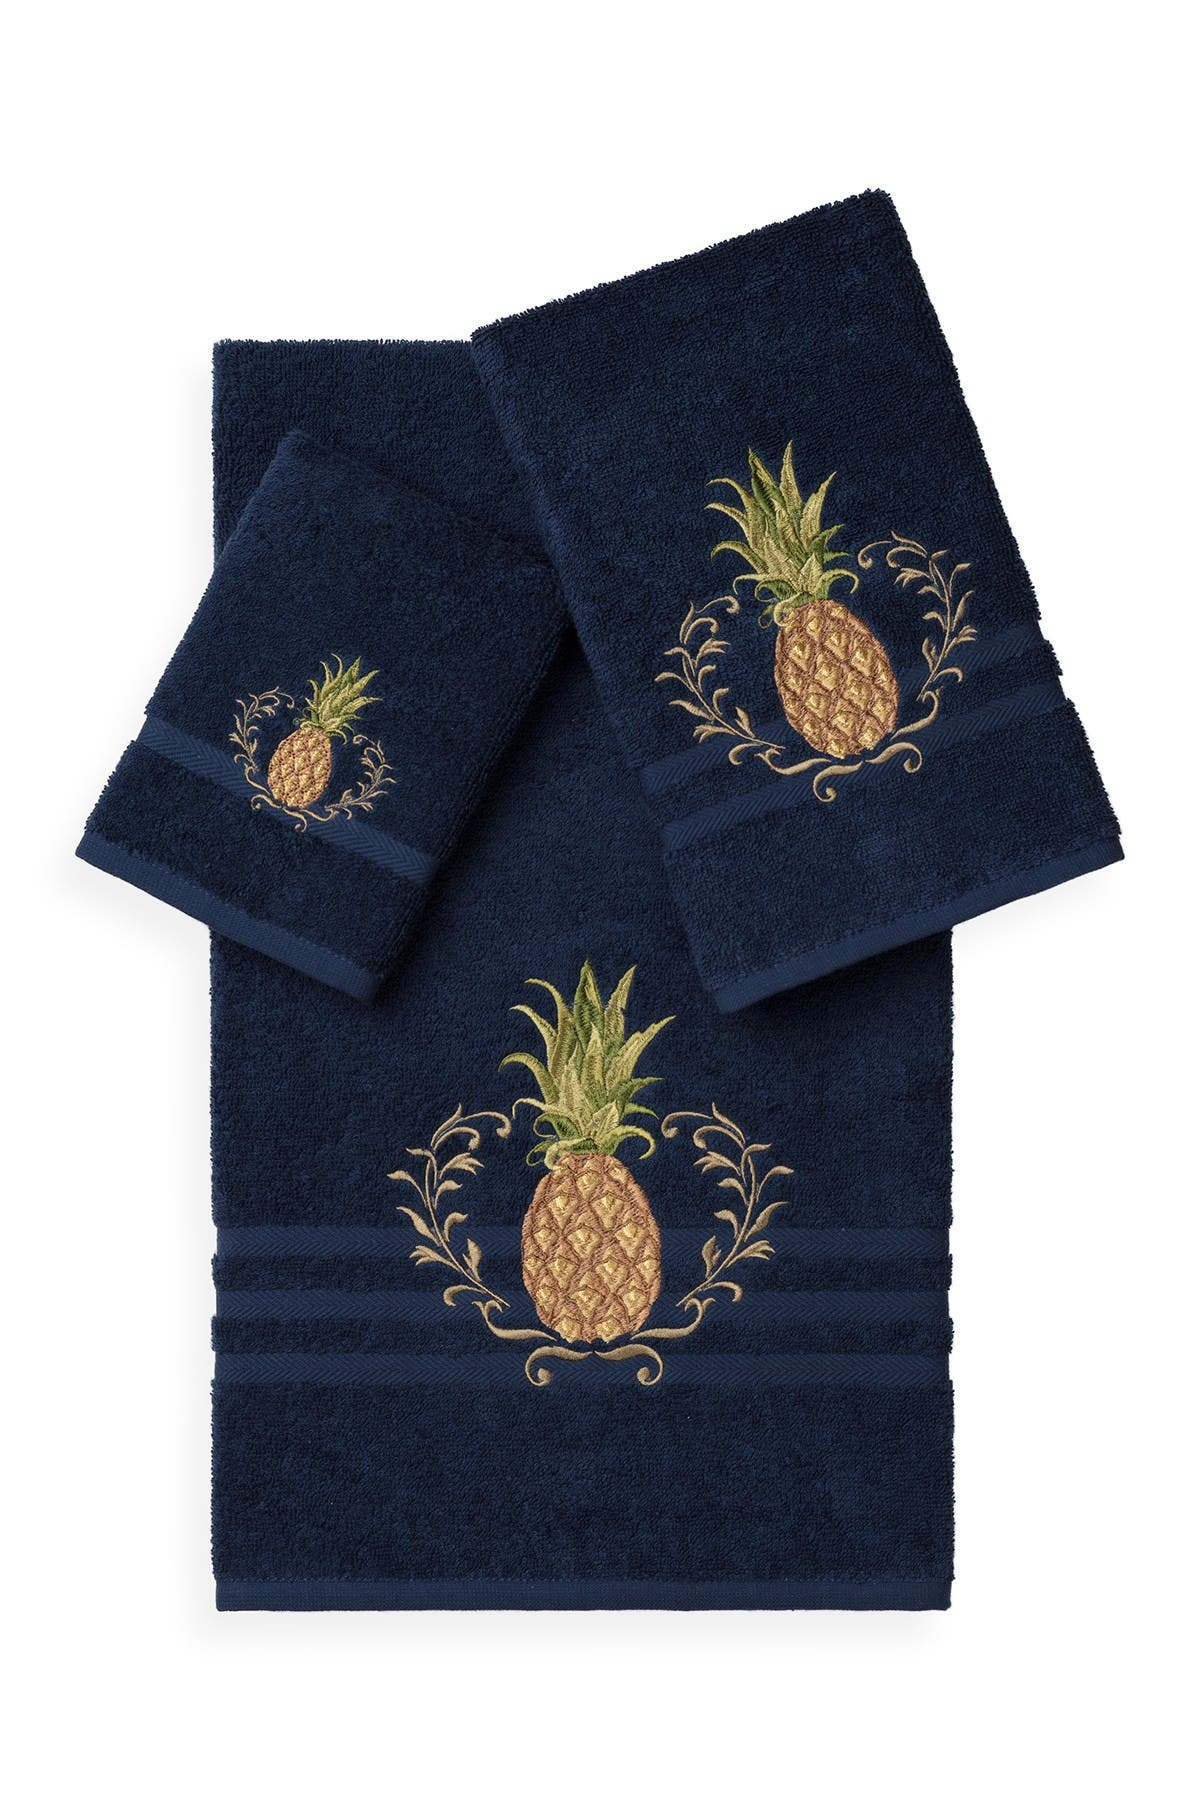 Image of LINUM TOWELS Welcome 3-Piece Embellished Towel Set - Midnight Blue